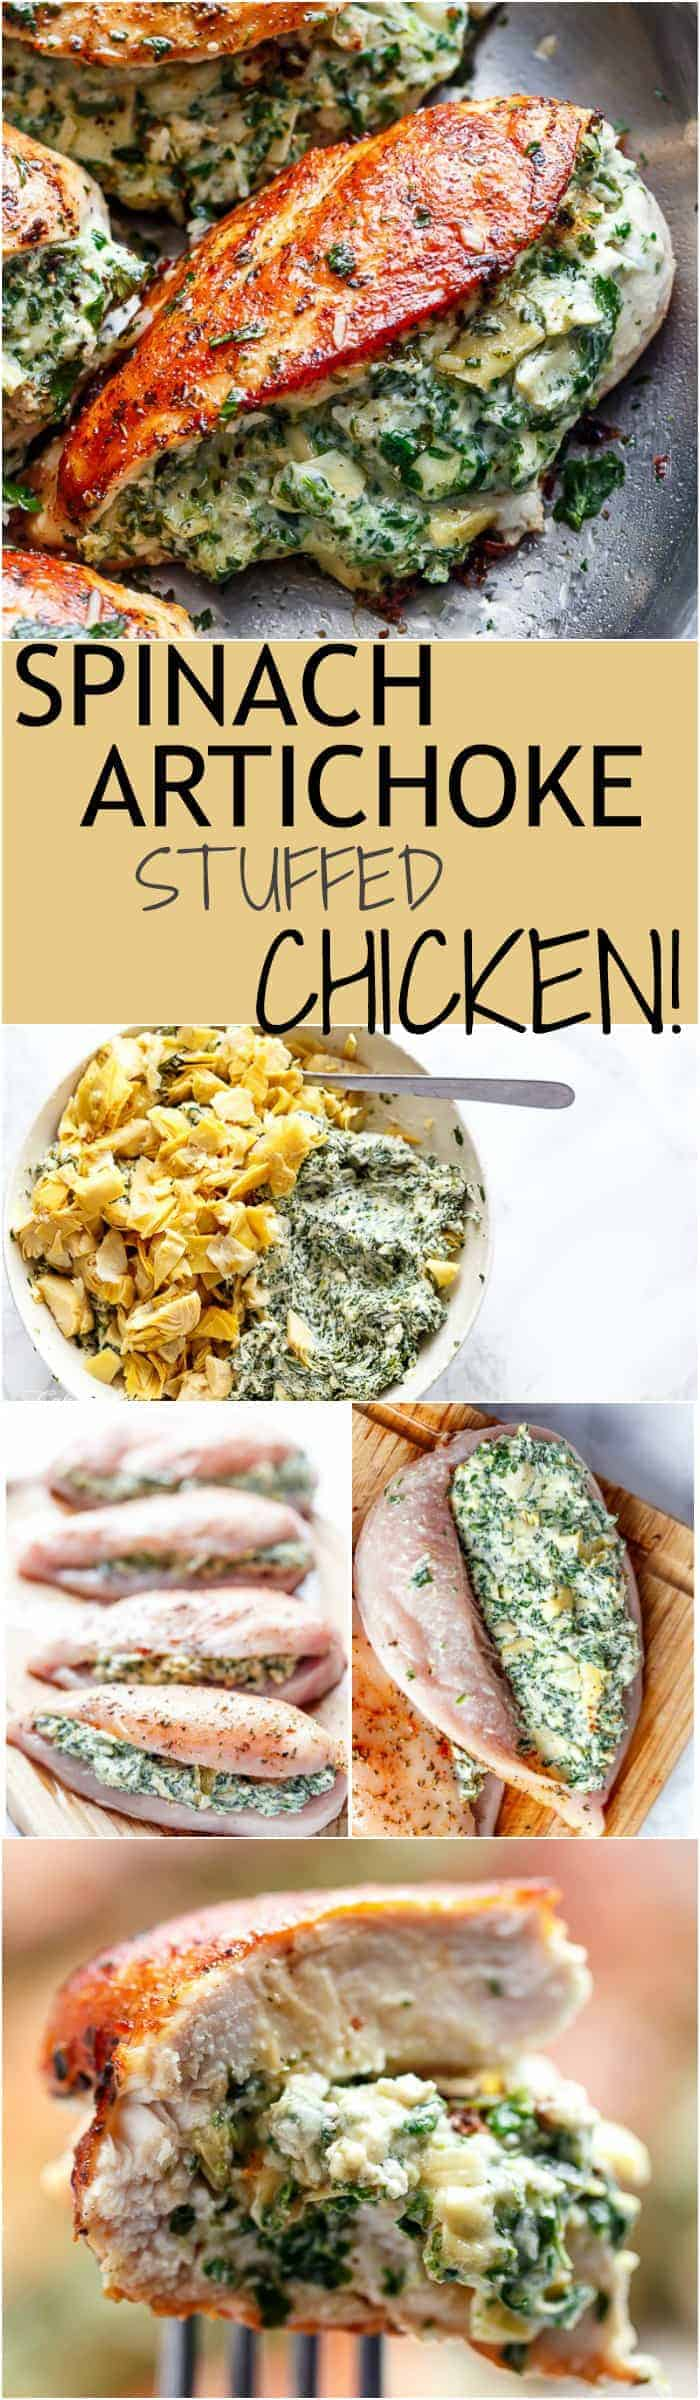 Spinach Artichoke Stuffed Chicken is a delicious way to turn a creamy dip into an incredible dinner! Serve it with a creamy sauce for added flavour! | https://cafedelites.com